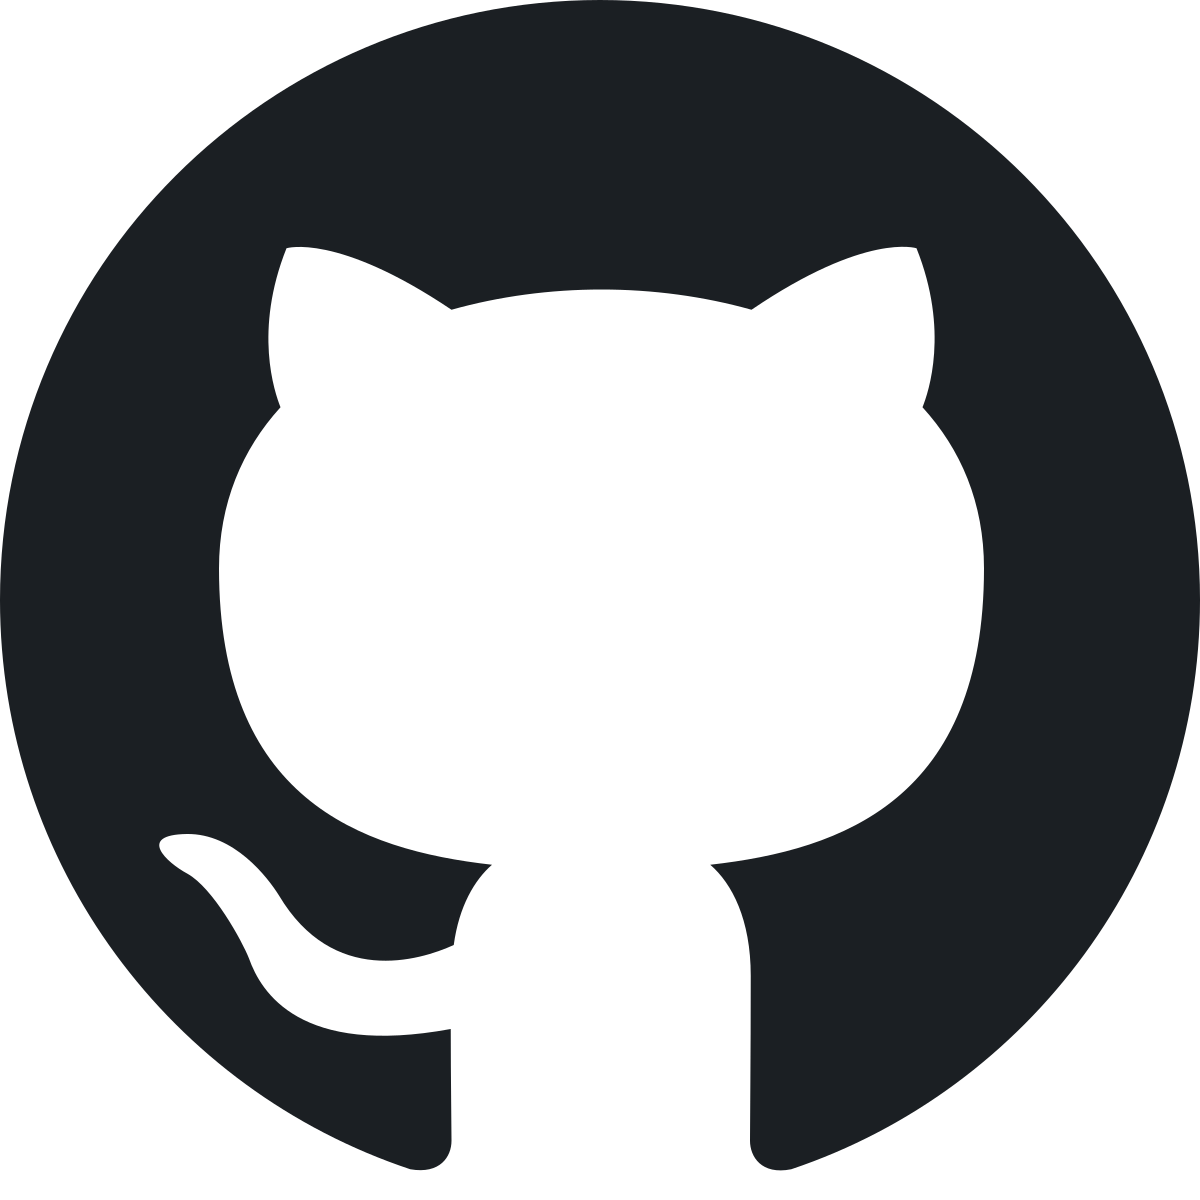 _images/github-icon.png